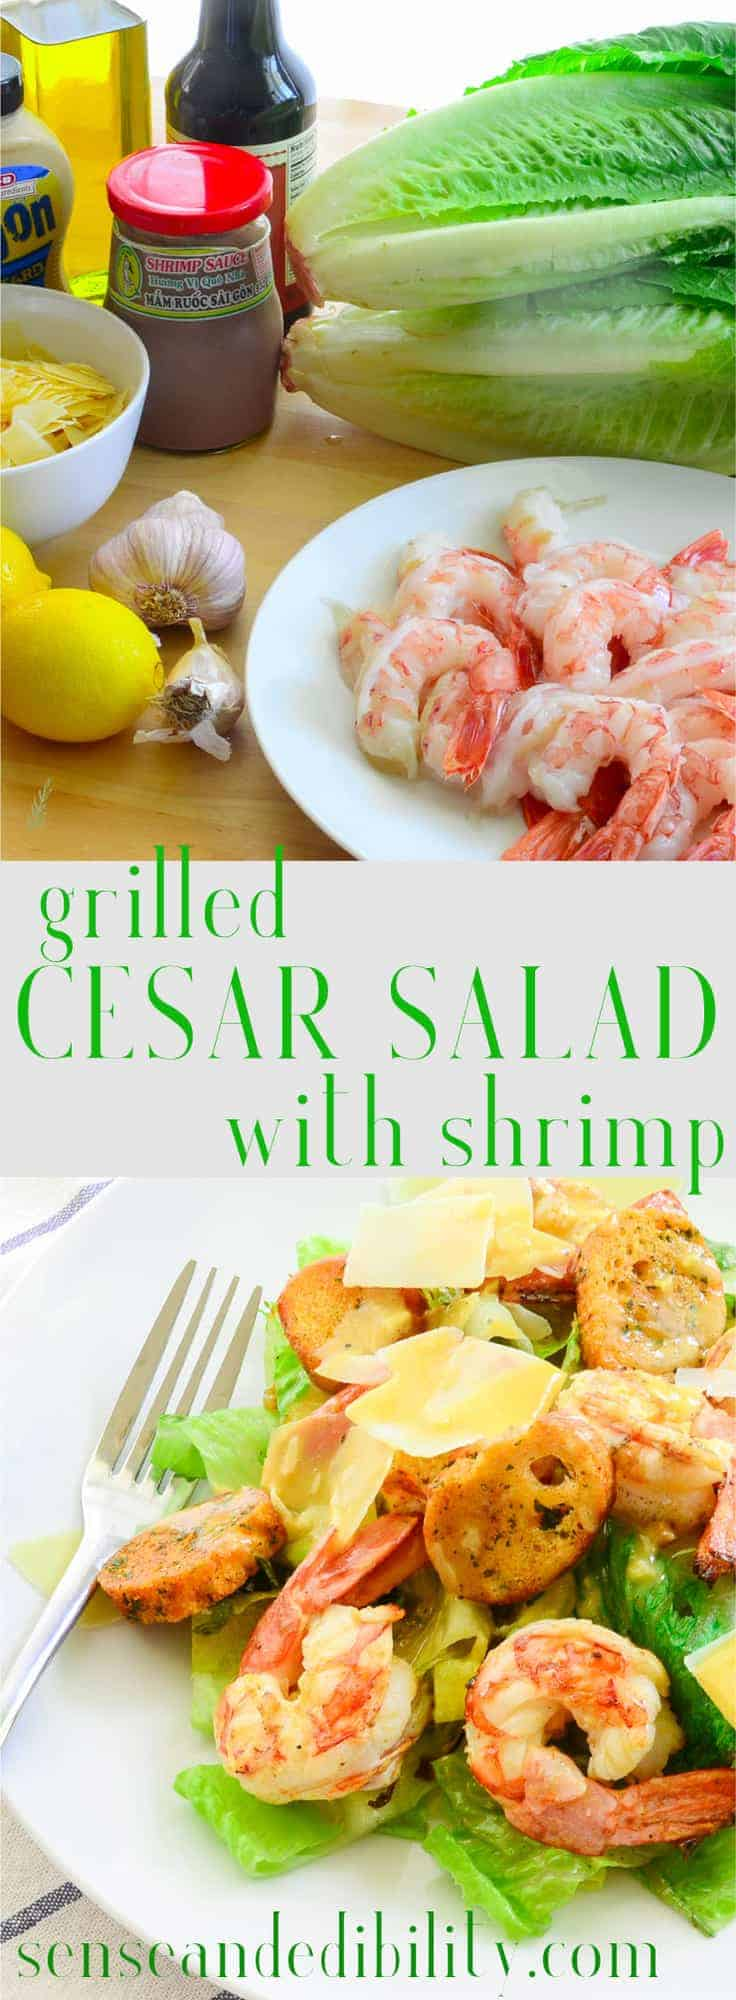 Sense & Edibility's Grilled Cesar Salad with Shrimp Pin